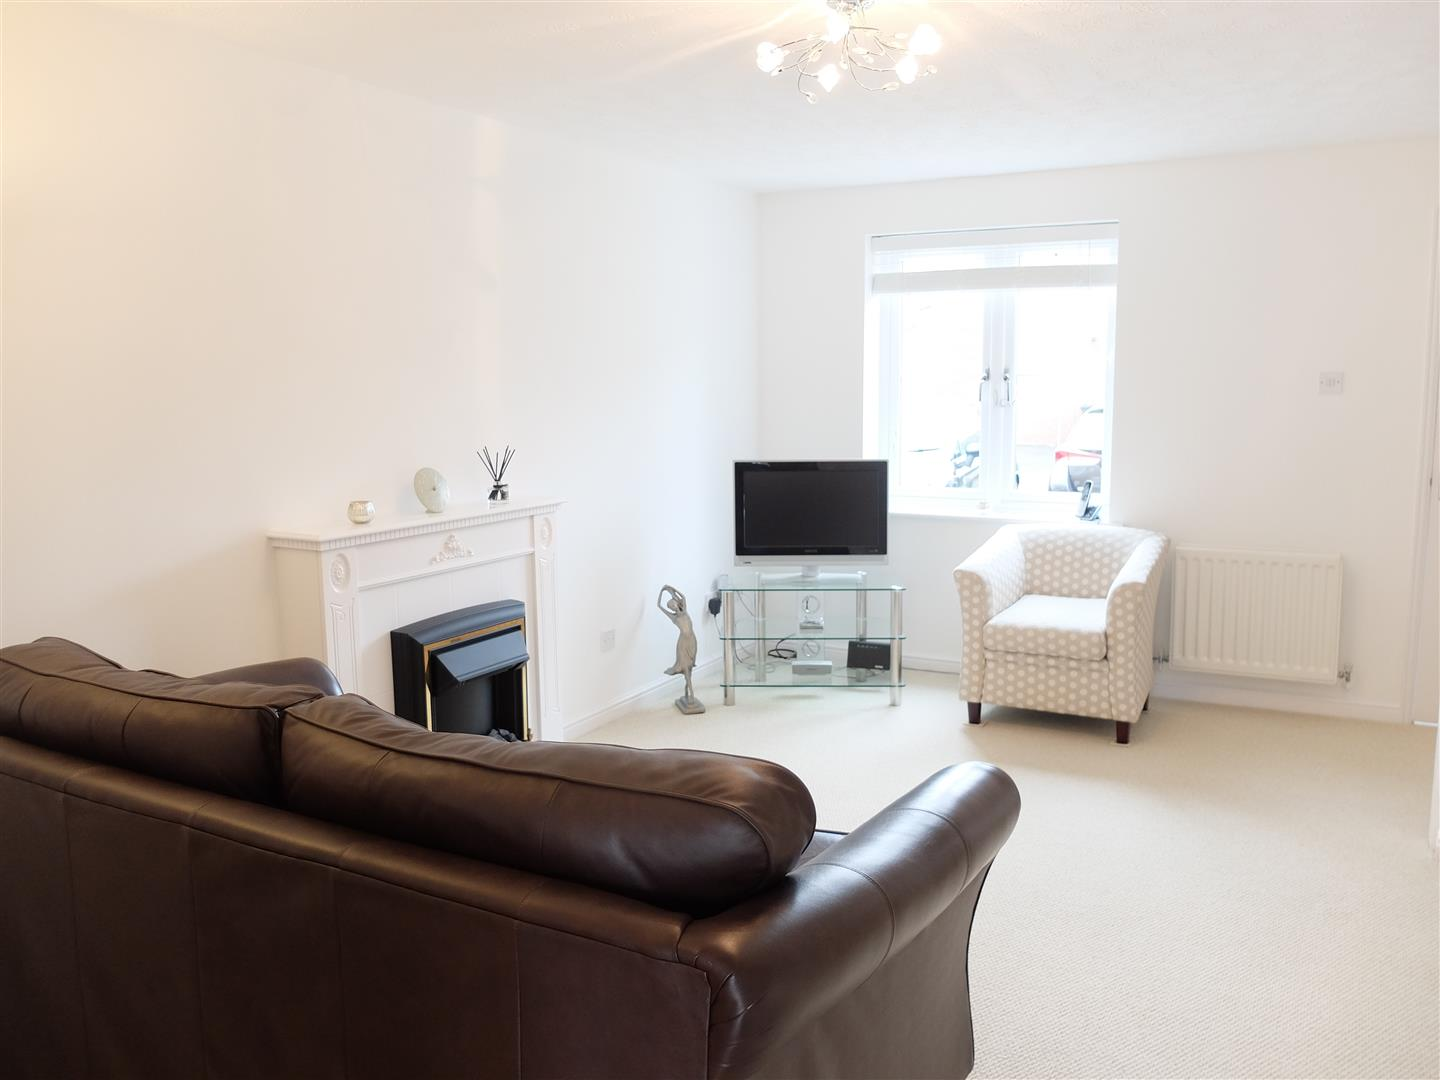 2 Bedrooms House - Terraced For Sale 10 Moorside Drive Carlisle